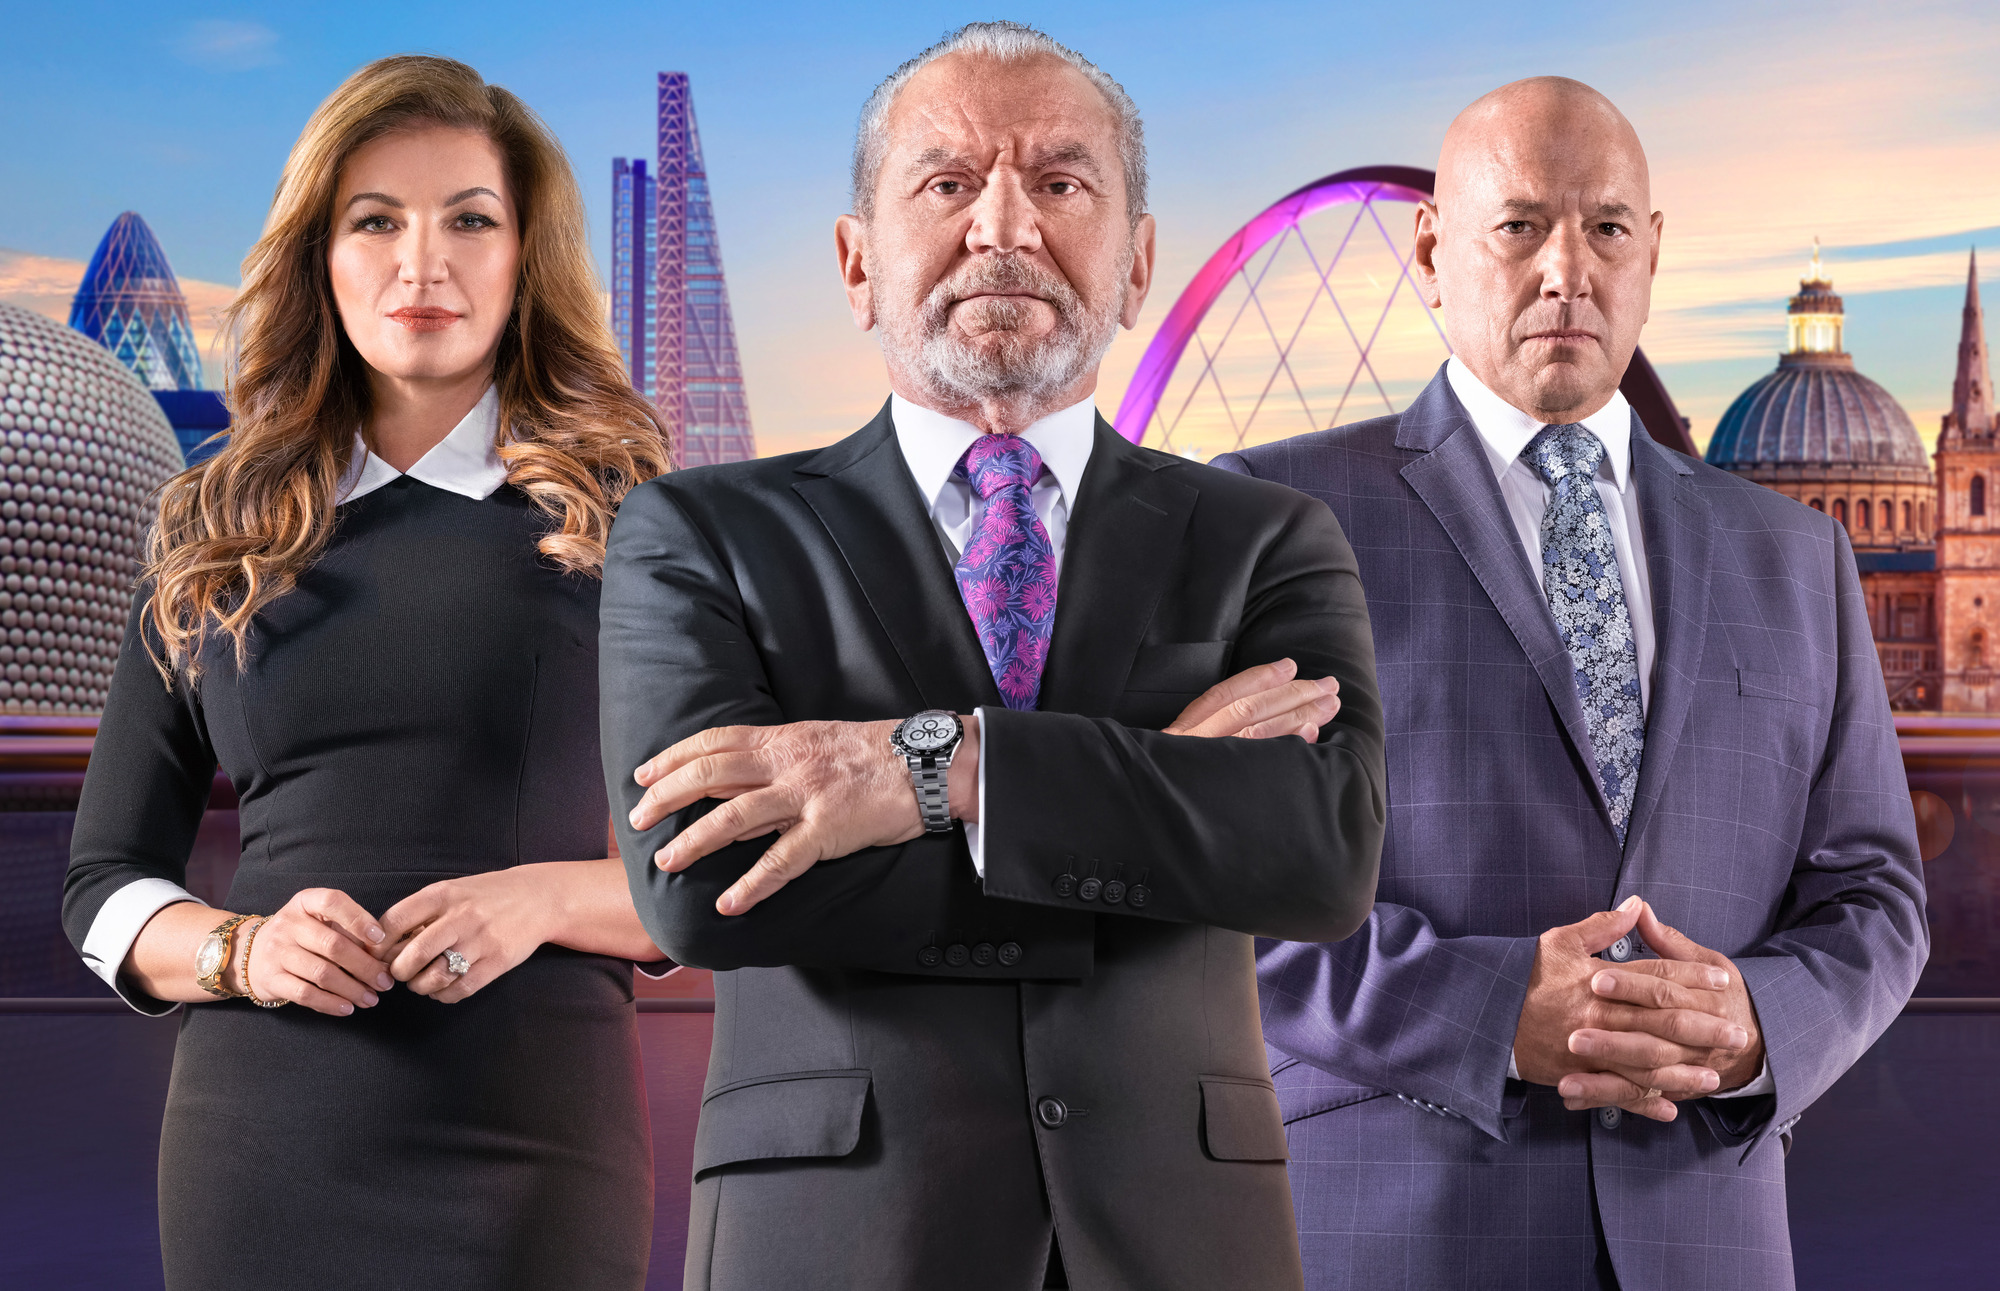 Who are The Apprentice interviewers?